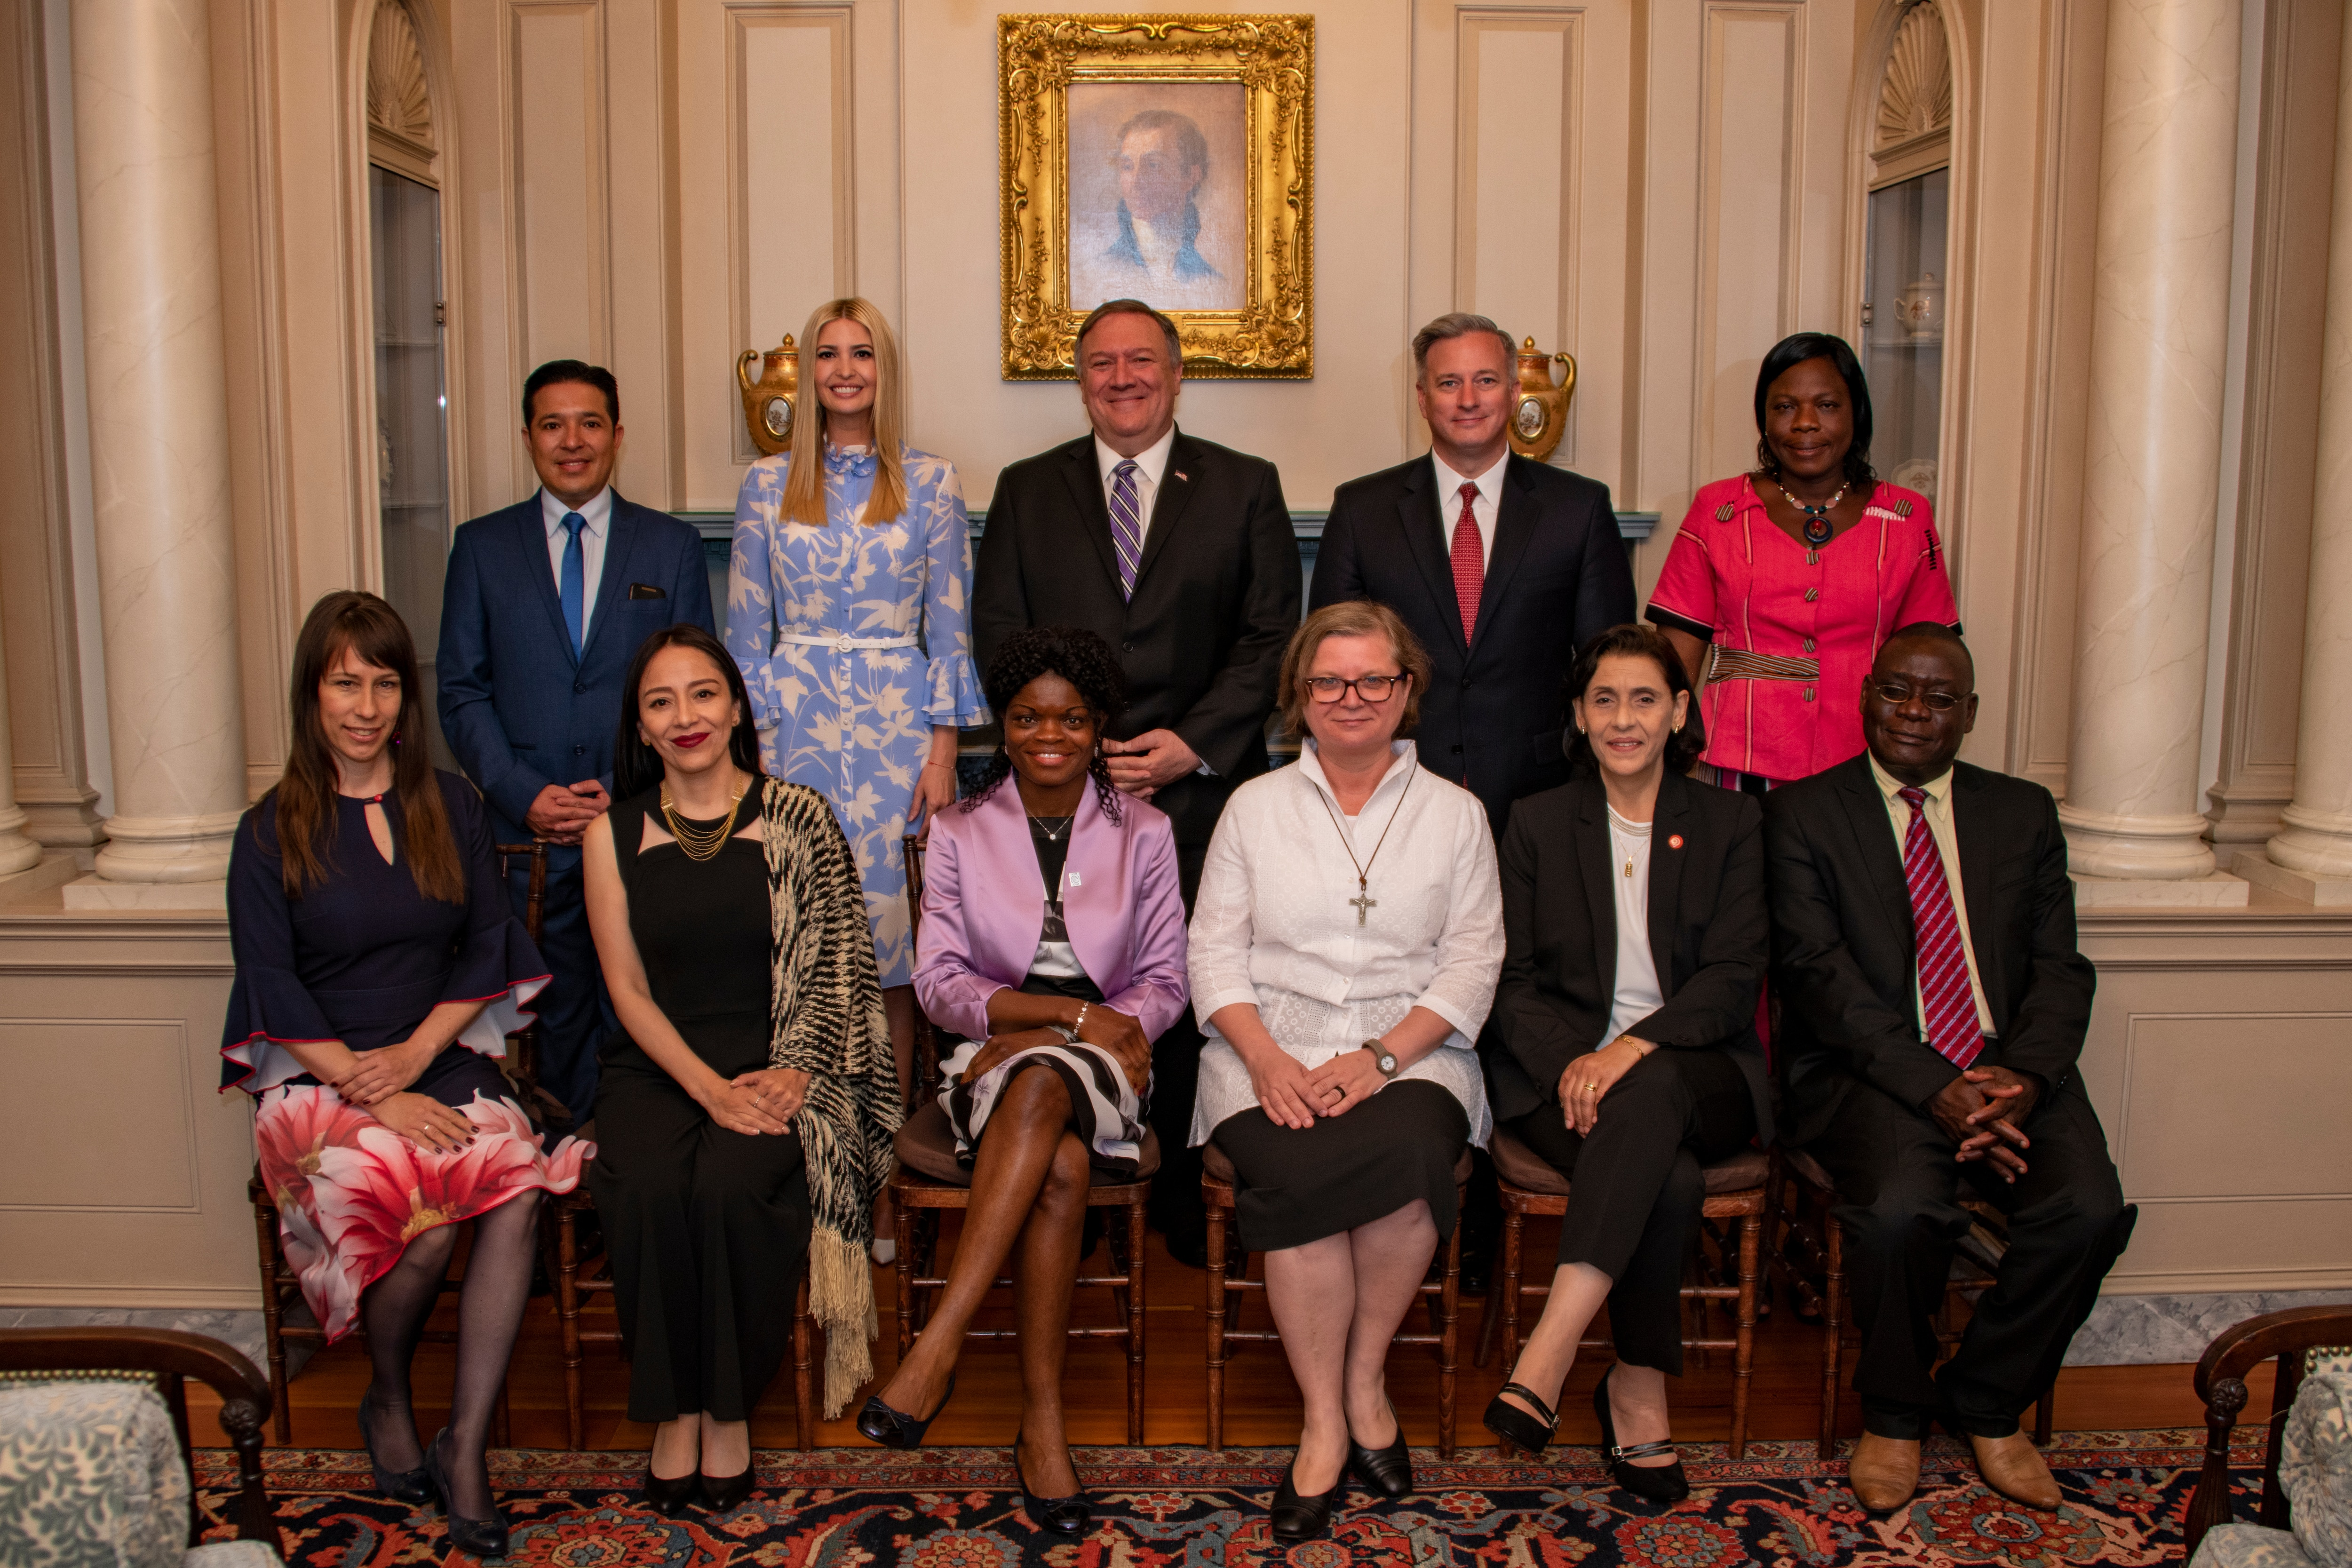 U.S. Secretary of State Michael R. Pompeo (center), Advisor to the President Ivanka Trump (center left), and Ambassador for Trafficking In Persons John Richmond of the Office to Monitor and Combat Trafficking in Persons (center right) pose for a group photo with the 2019 'TIP Report Heroes' at the U.S. Department of State, in Washington, DC on June 20, 2019.